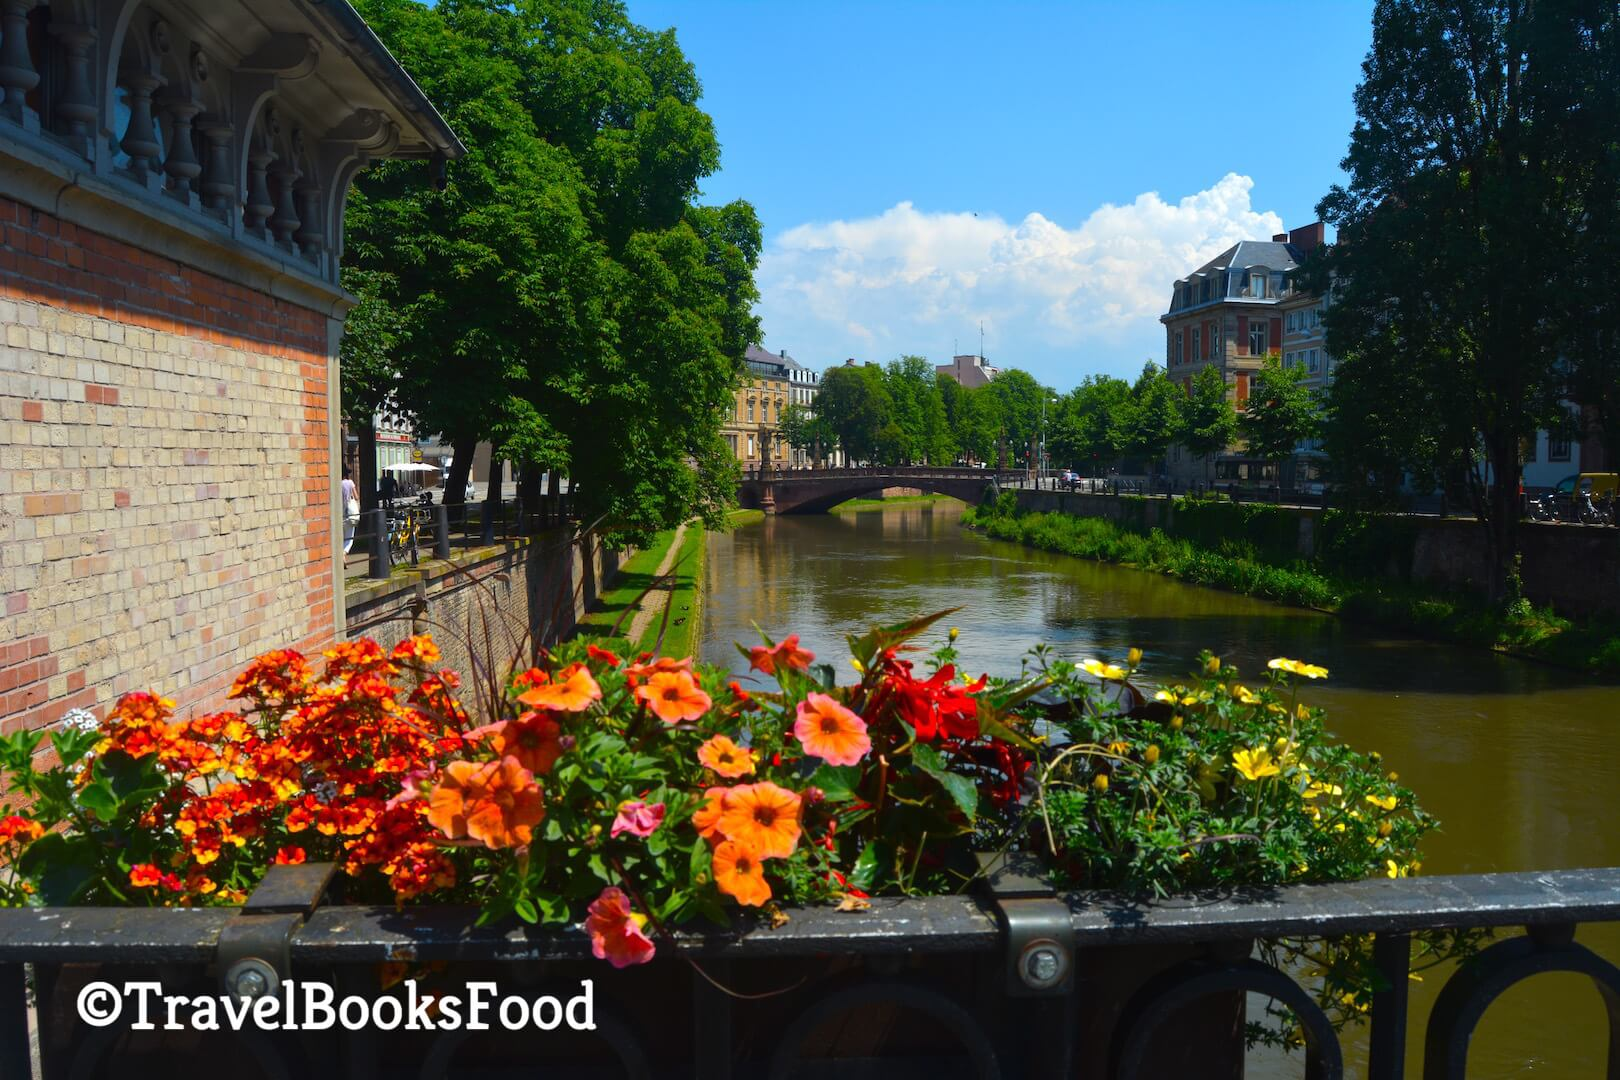 A view of the bridges of Strasbourg in France with some flower baskets on one of the bridges